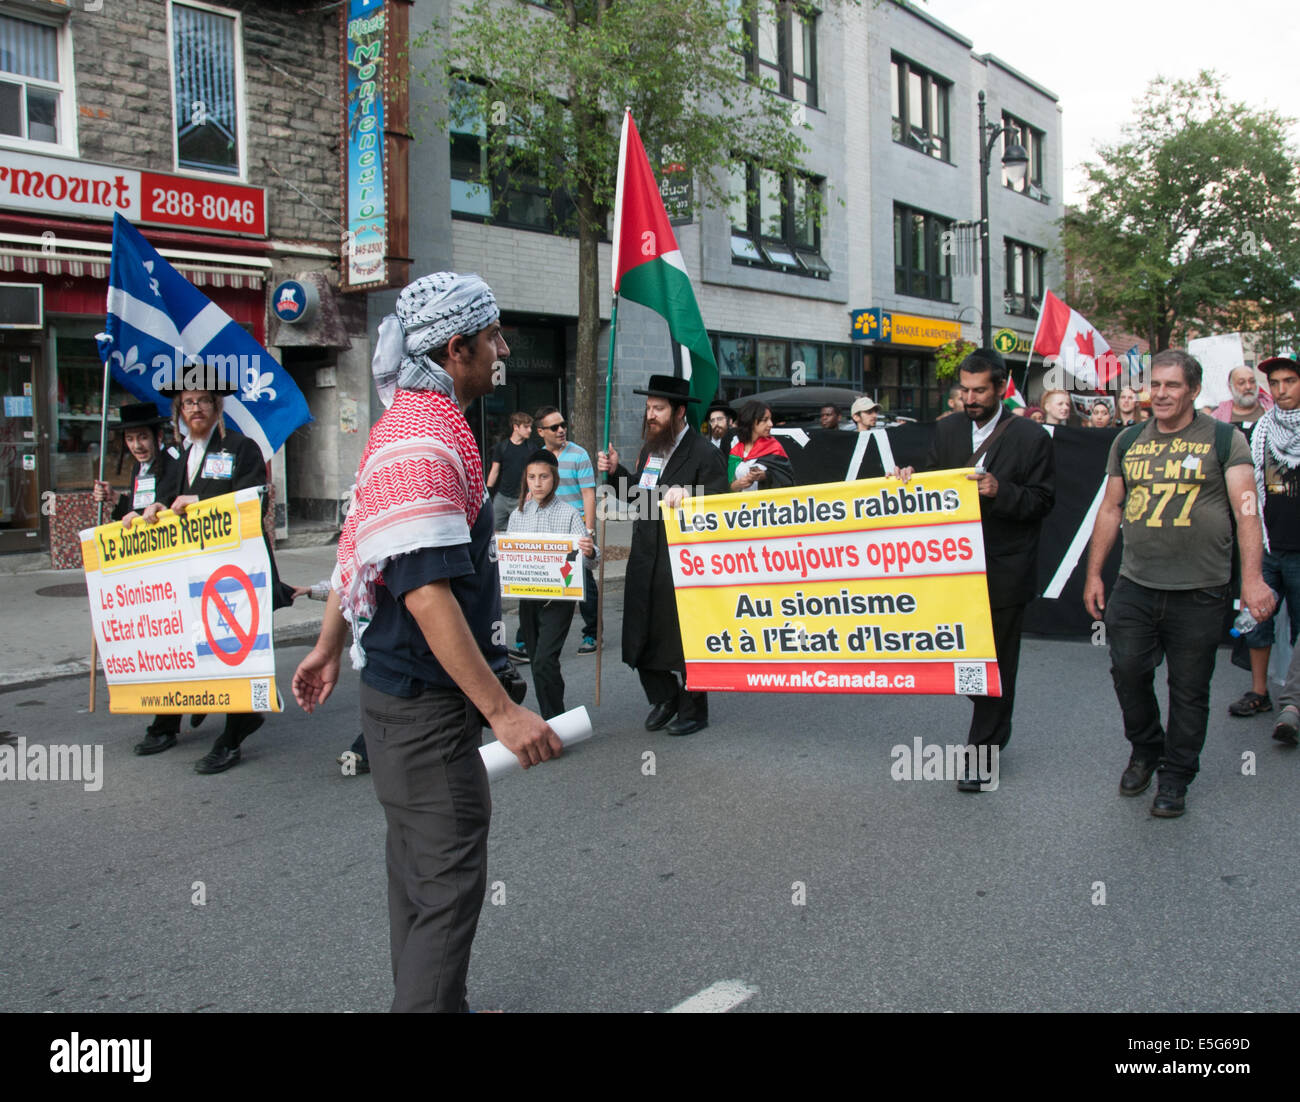 Montreal, Canada. 30th July, 2014. Montrealers took onto the streets to protest against the continious bombing of - Stock Image